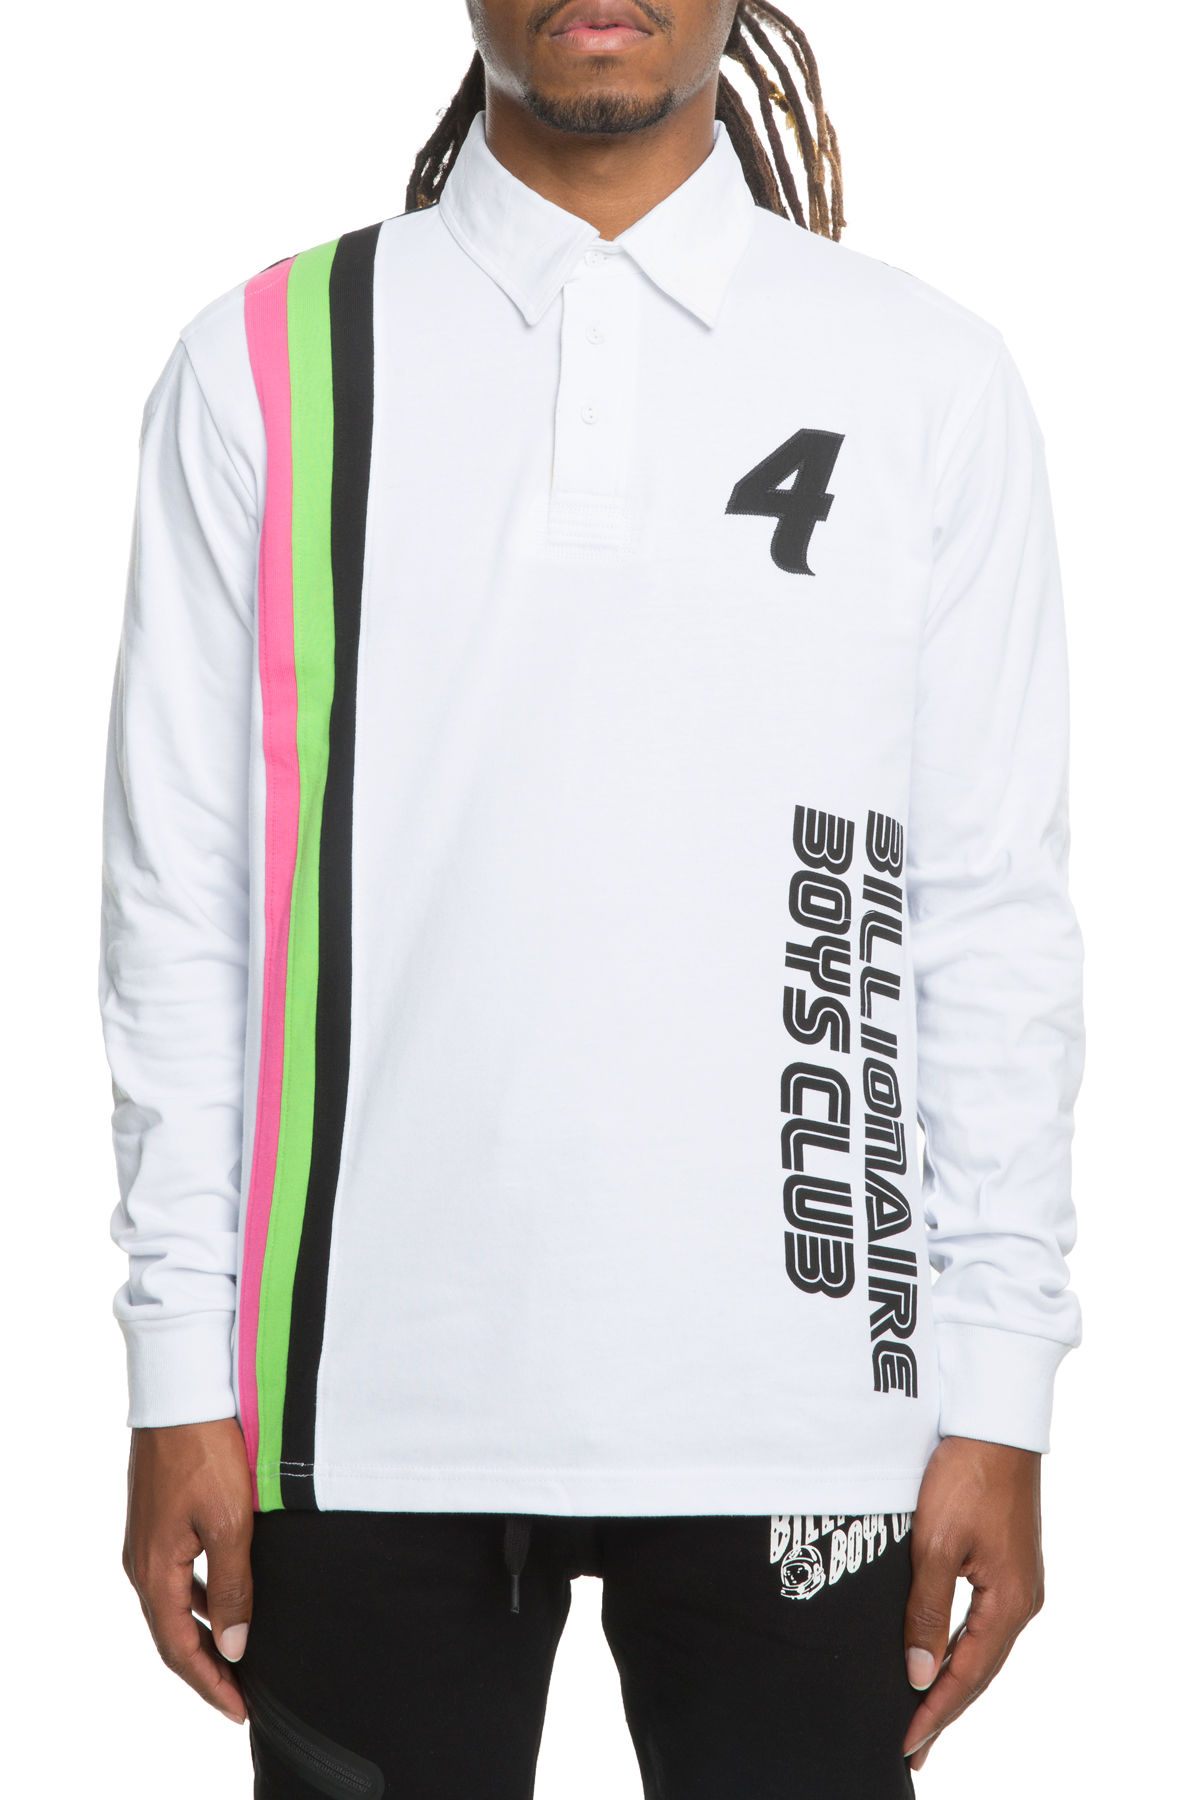 Image of The Podium Long Sleeve Polo in White